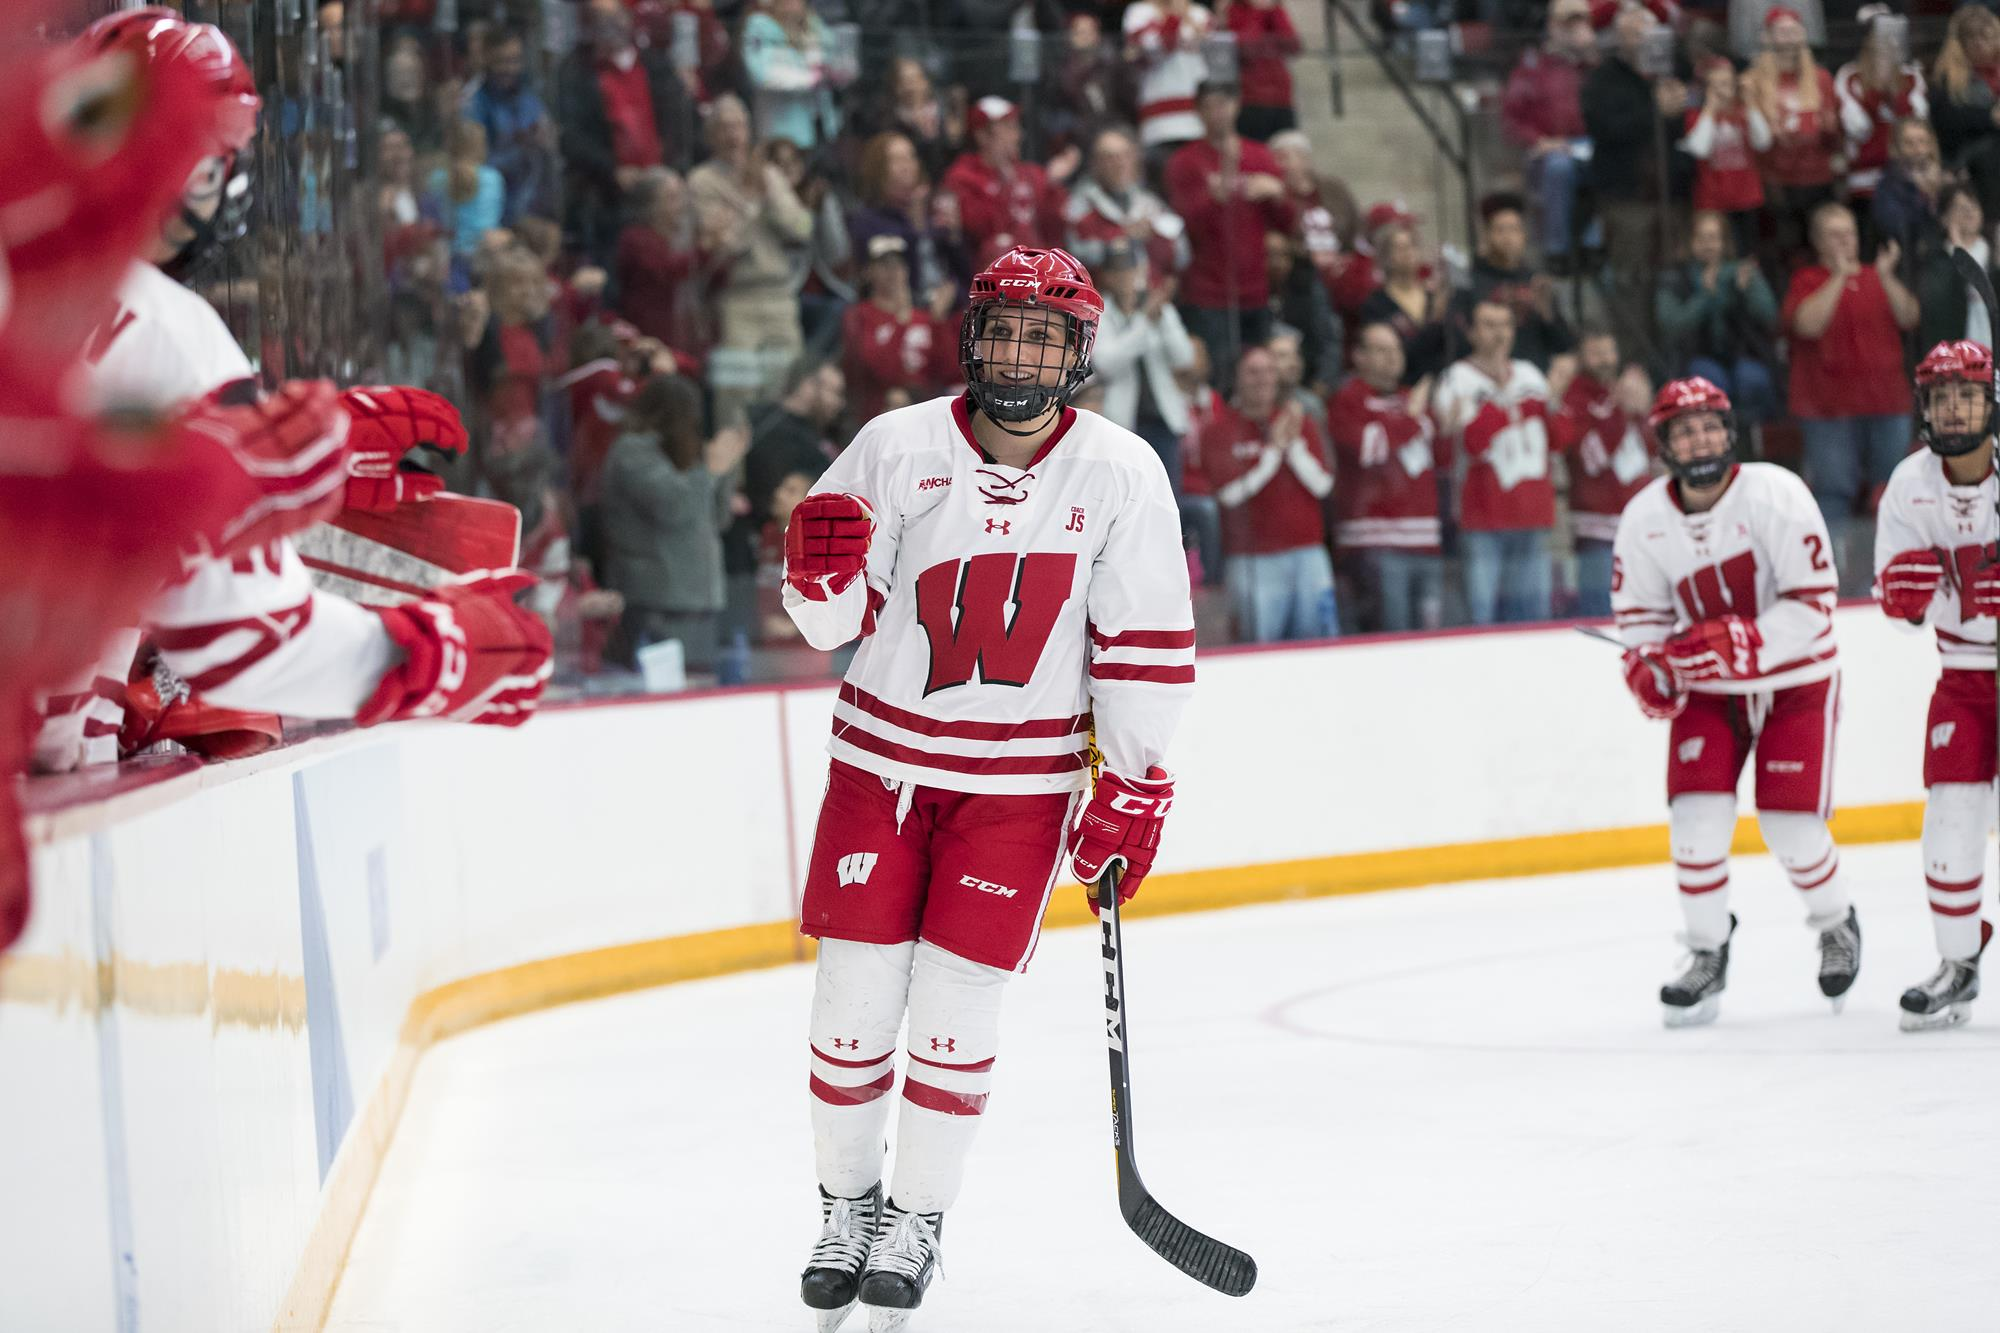 Wisconsin's Pankowski Named To NCAA Woman Of The Year Award Final 30